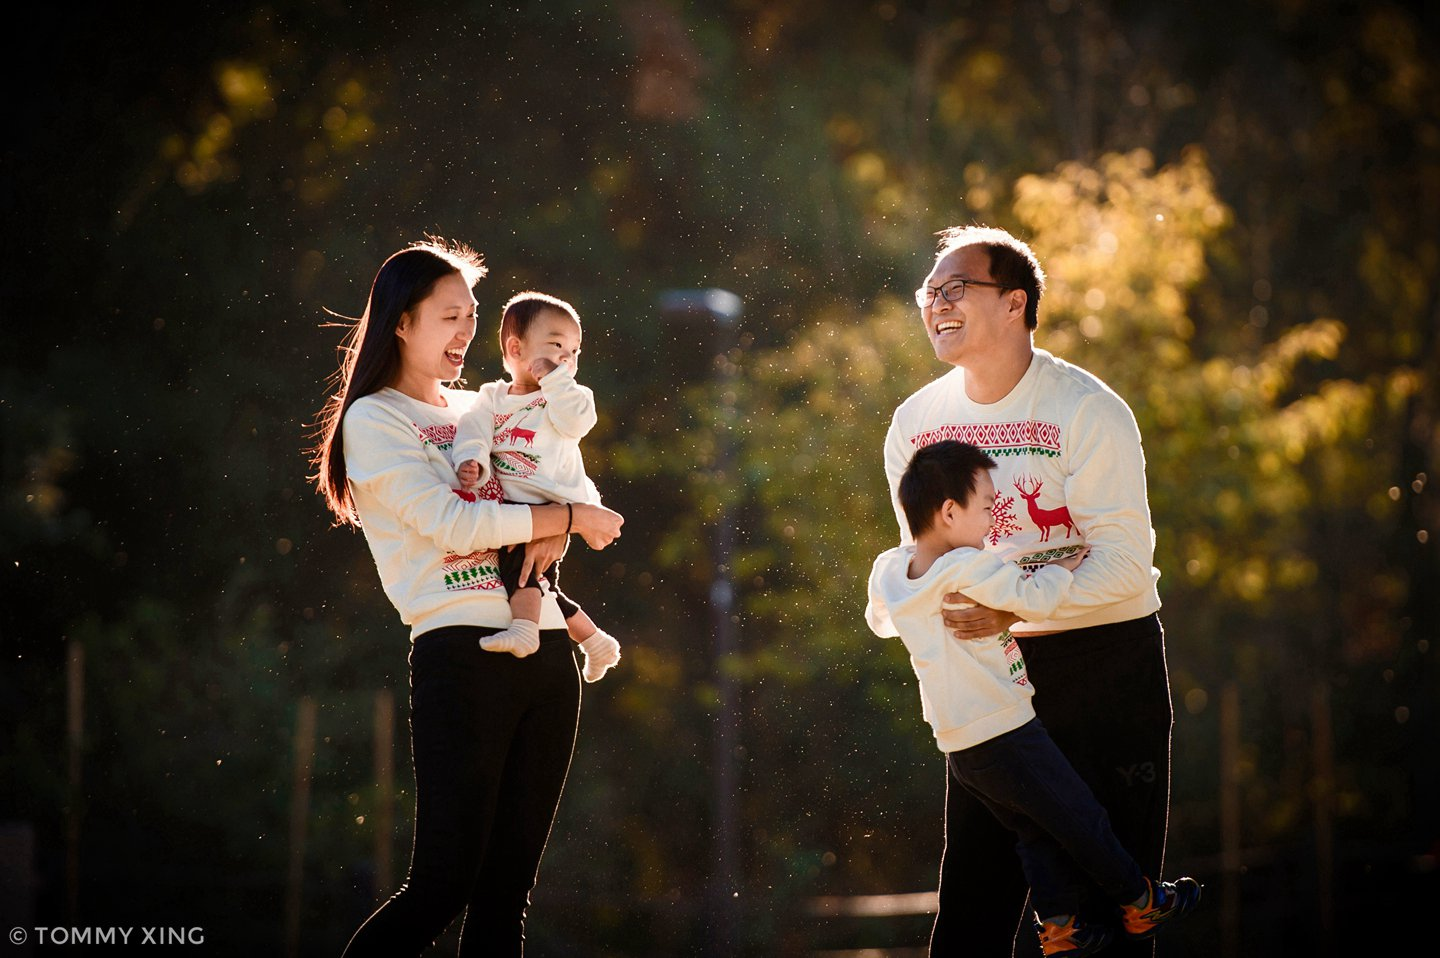 Los Angeles Family Portrait Photographer 洛杉矶家庭摄影师 Tommy Xing  03.jpg